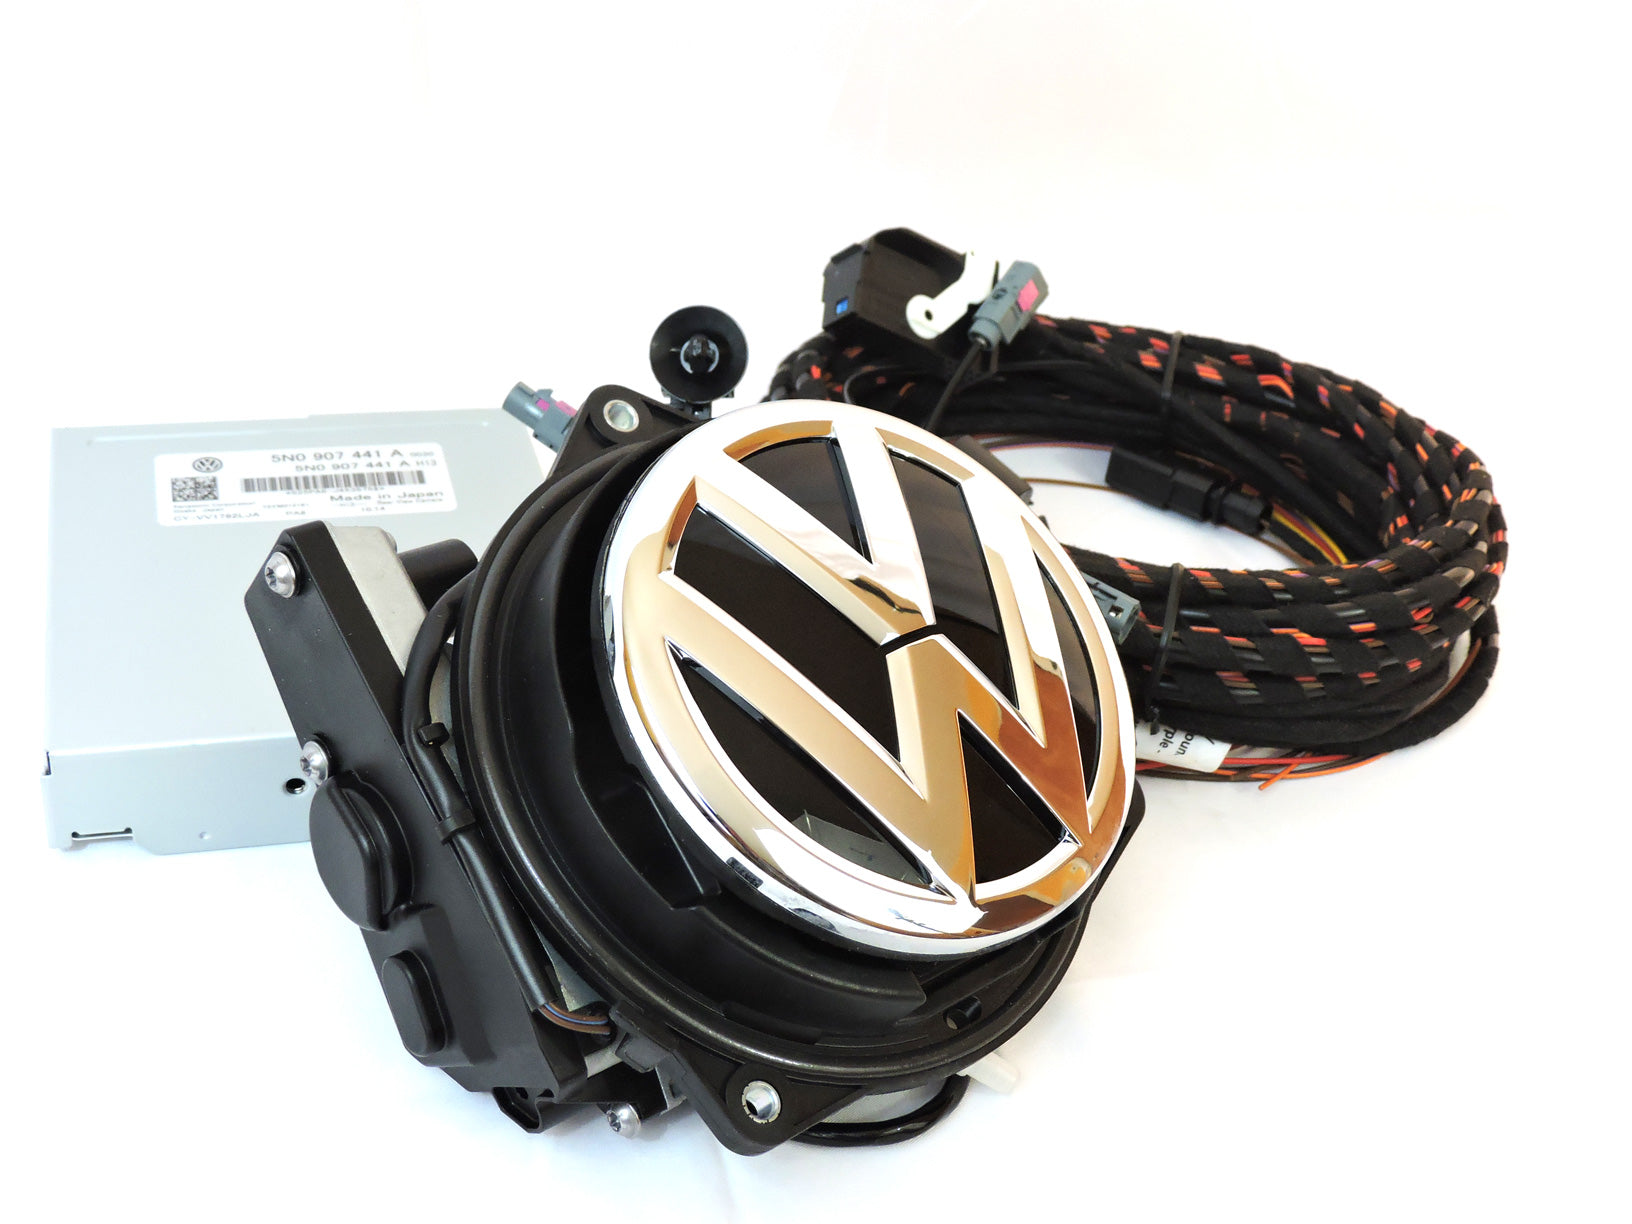 Volkswagen Highline Emblem Rear View Camera MK5/MK6 Golf, EOS, Passat